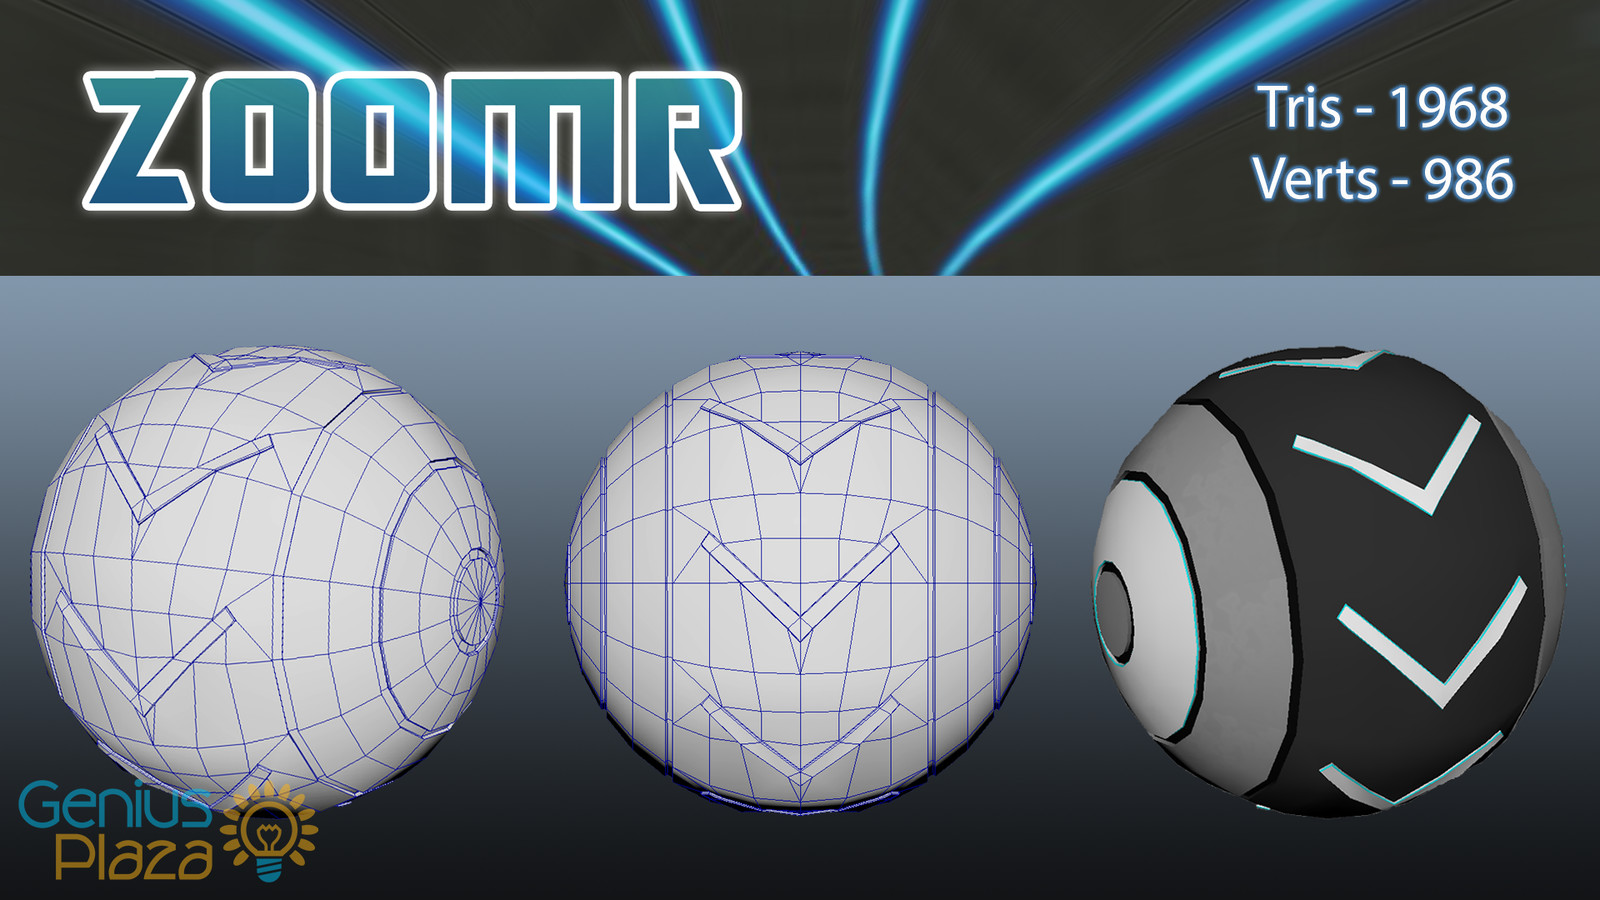 A breakdown of the model for the player's avatar rolling down the futuristic tunnel in Zoomr.